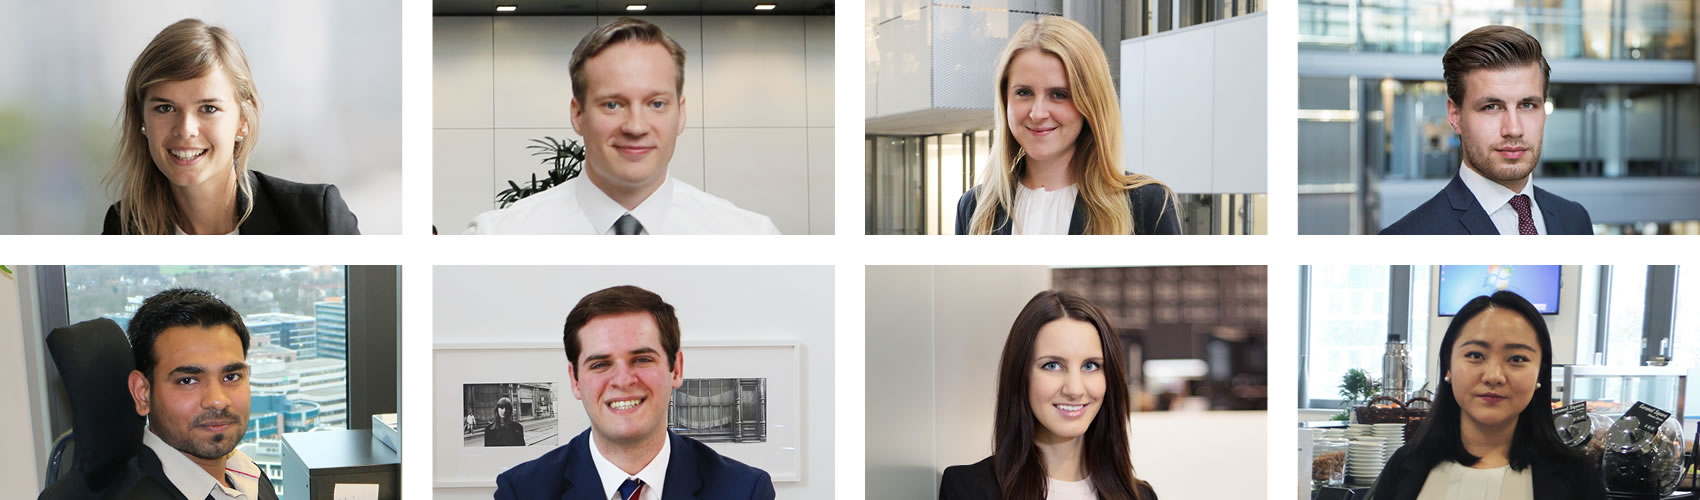 Take a look inside the Deutsche Börse Group - image courtesy of the Deutsche Börse Group -  Main left: Lara Atkinson. Top row from left:  Christian Hoops, Ryan Finn, Lin Xu. Bottom row from left: Markus Stoker, Mélanie Moos, Peeyush Arora. Main right: Agathe Glatz.